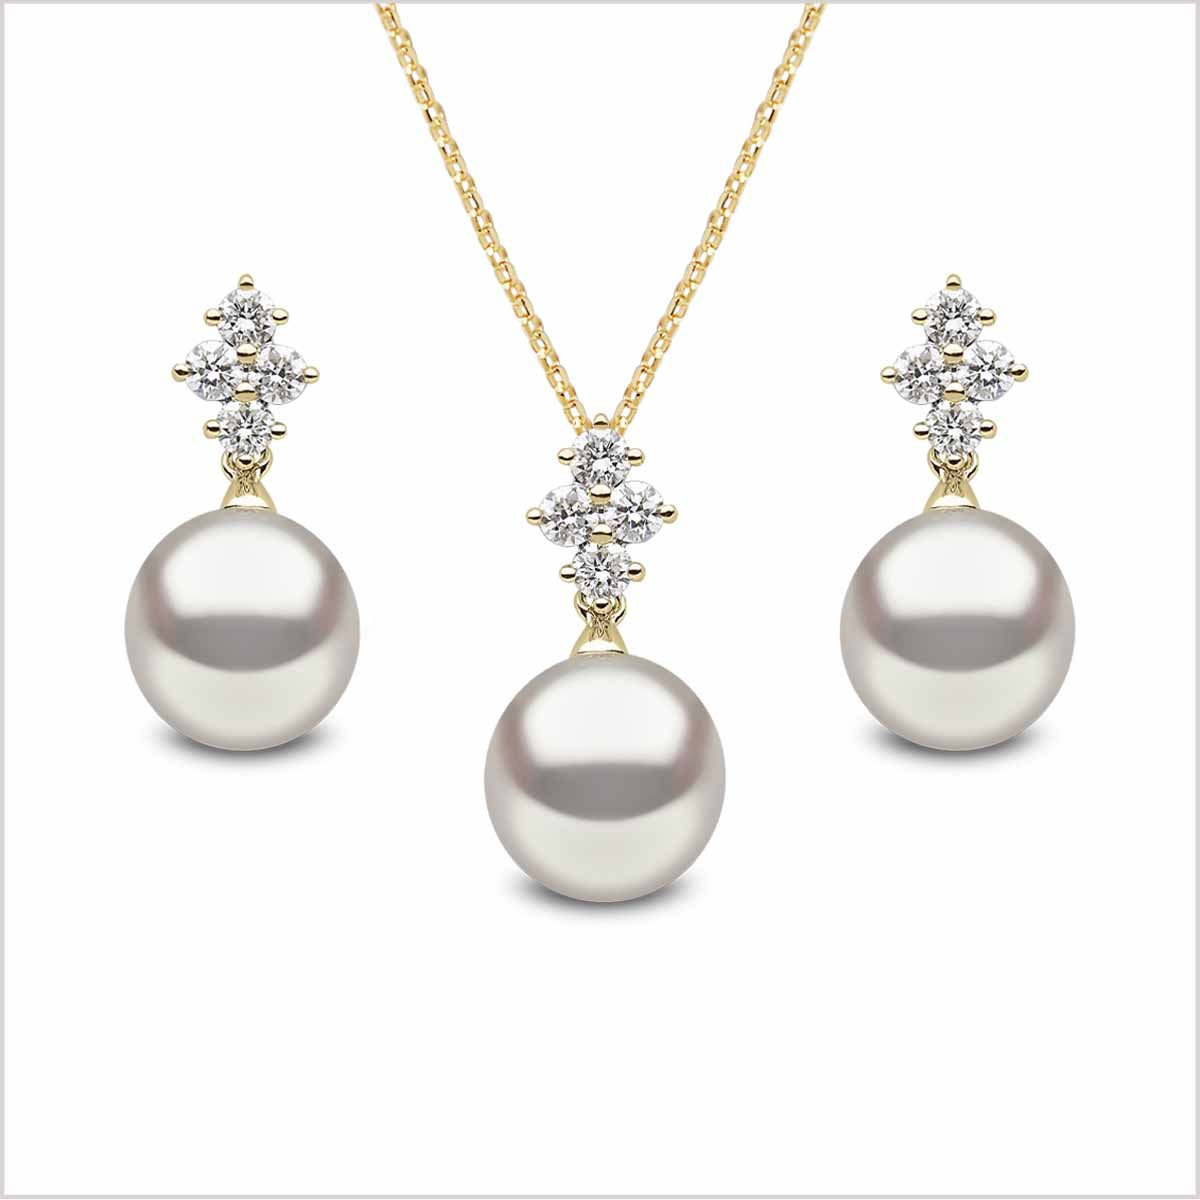 Yoko London Classic Freshwater Pearl and Diamond Earring and Pendant Set